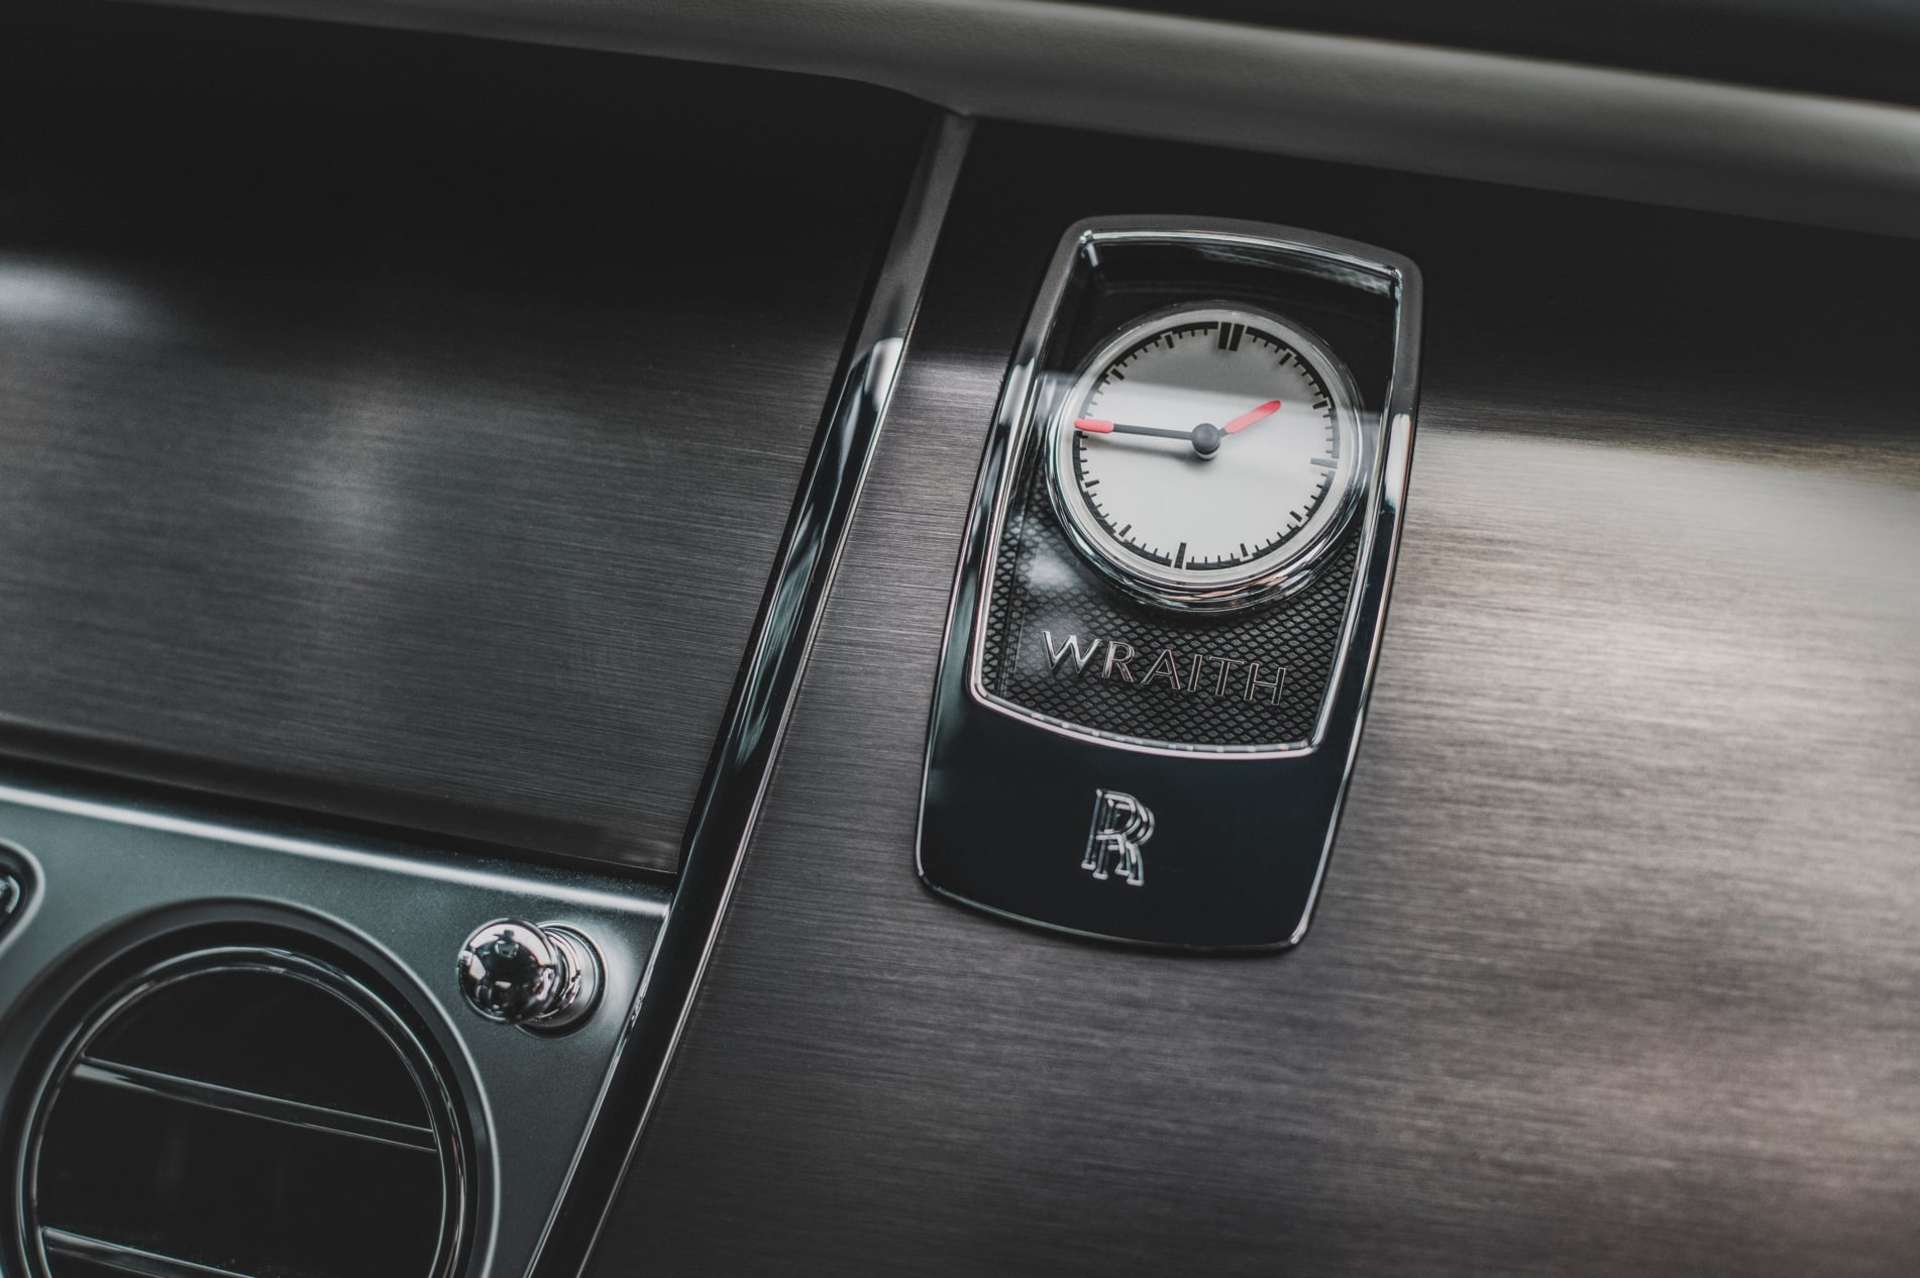 Rolls-Royce Wraith close up clock face on dashboard